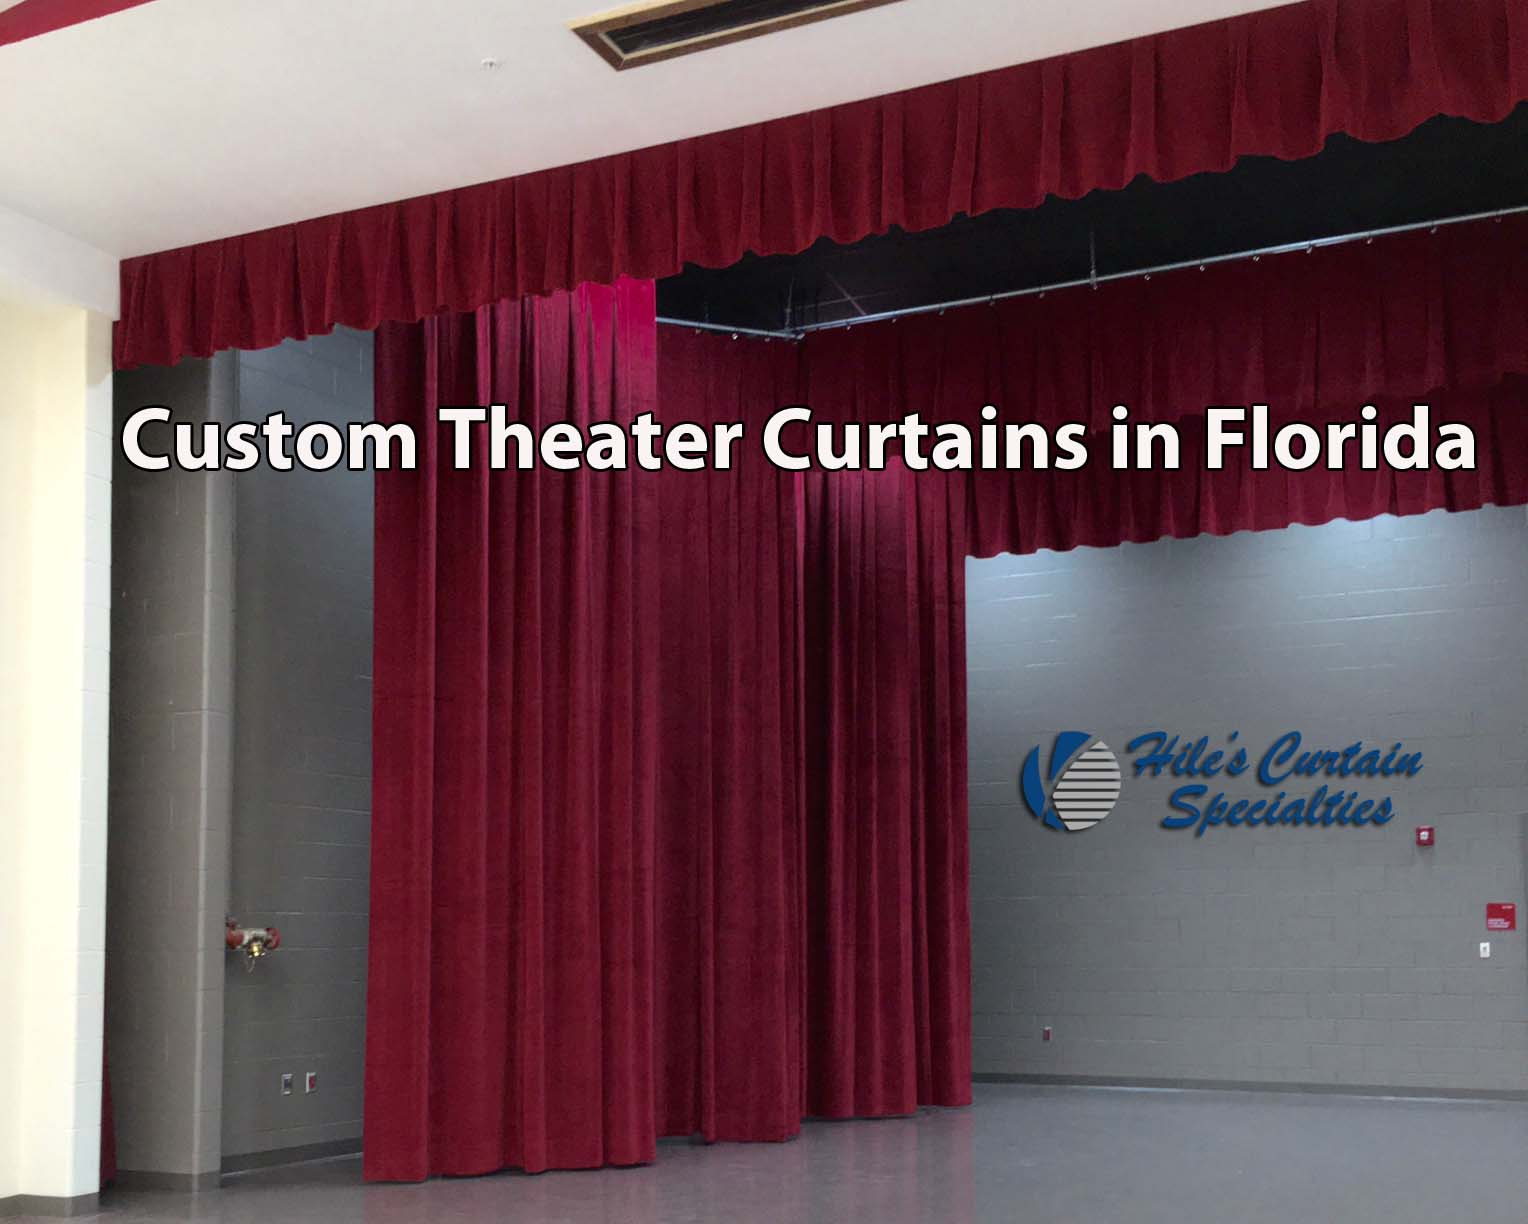 Custom Theater Curtains in Florida